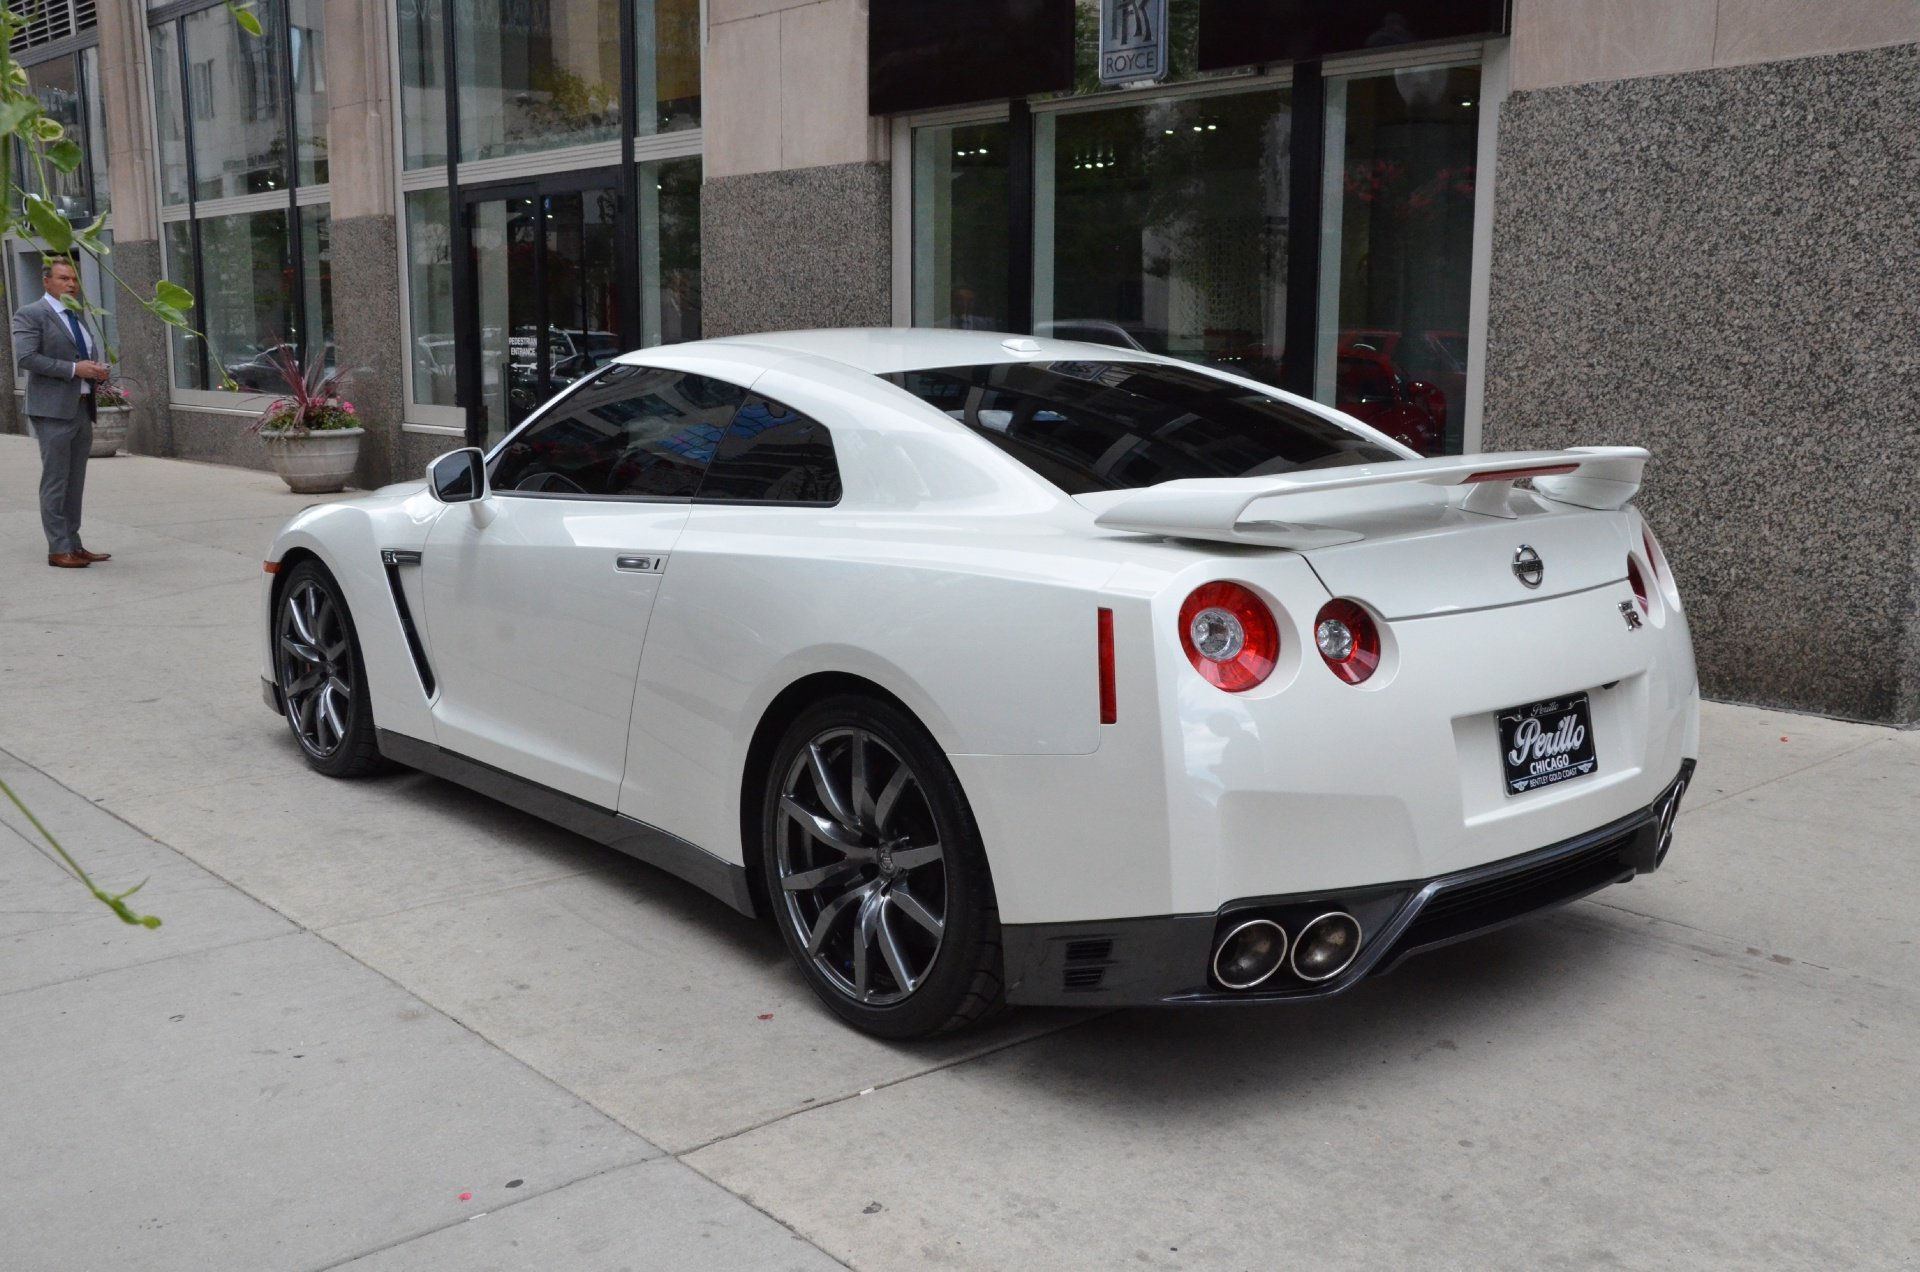 Cars That Start With C >> 2014 Nissan GTR coupe white japan sportcar supercars wallpaper | 1920x1272 | 395526 | WallpaperUP